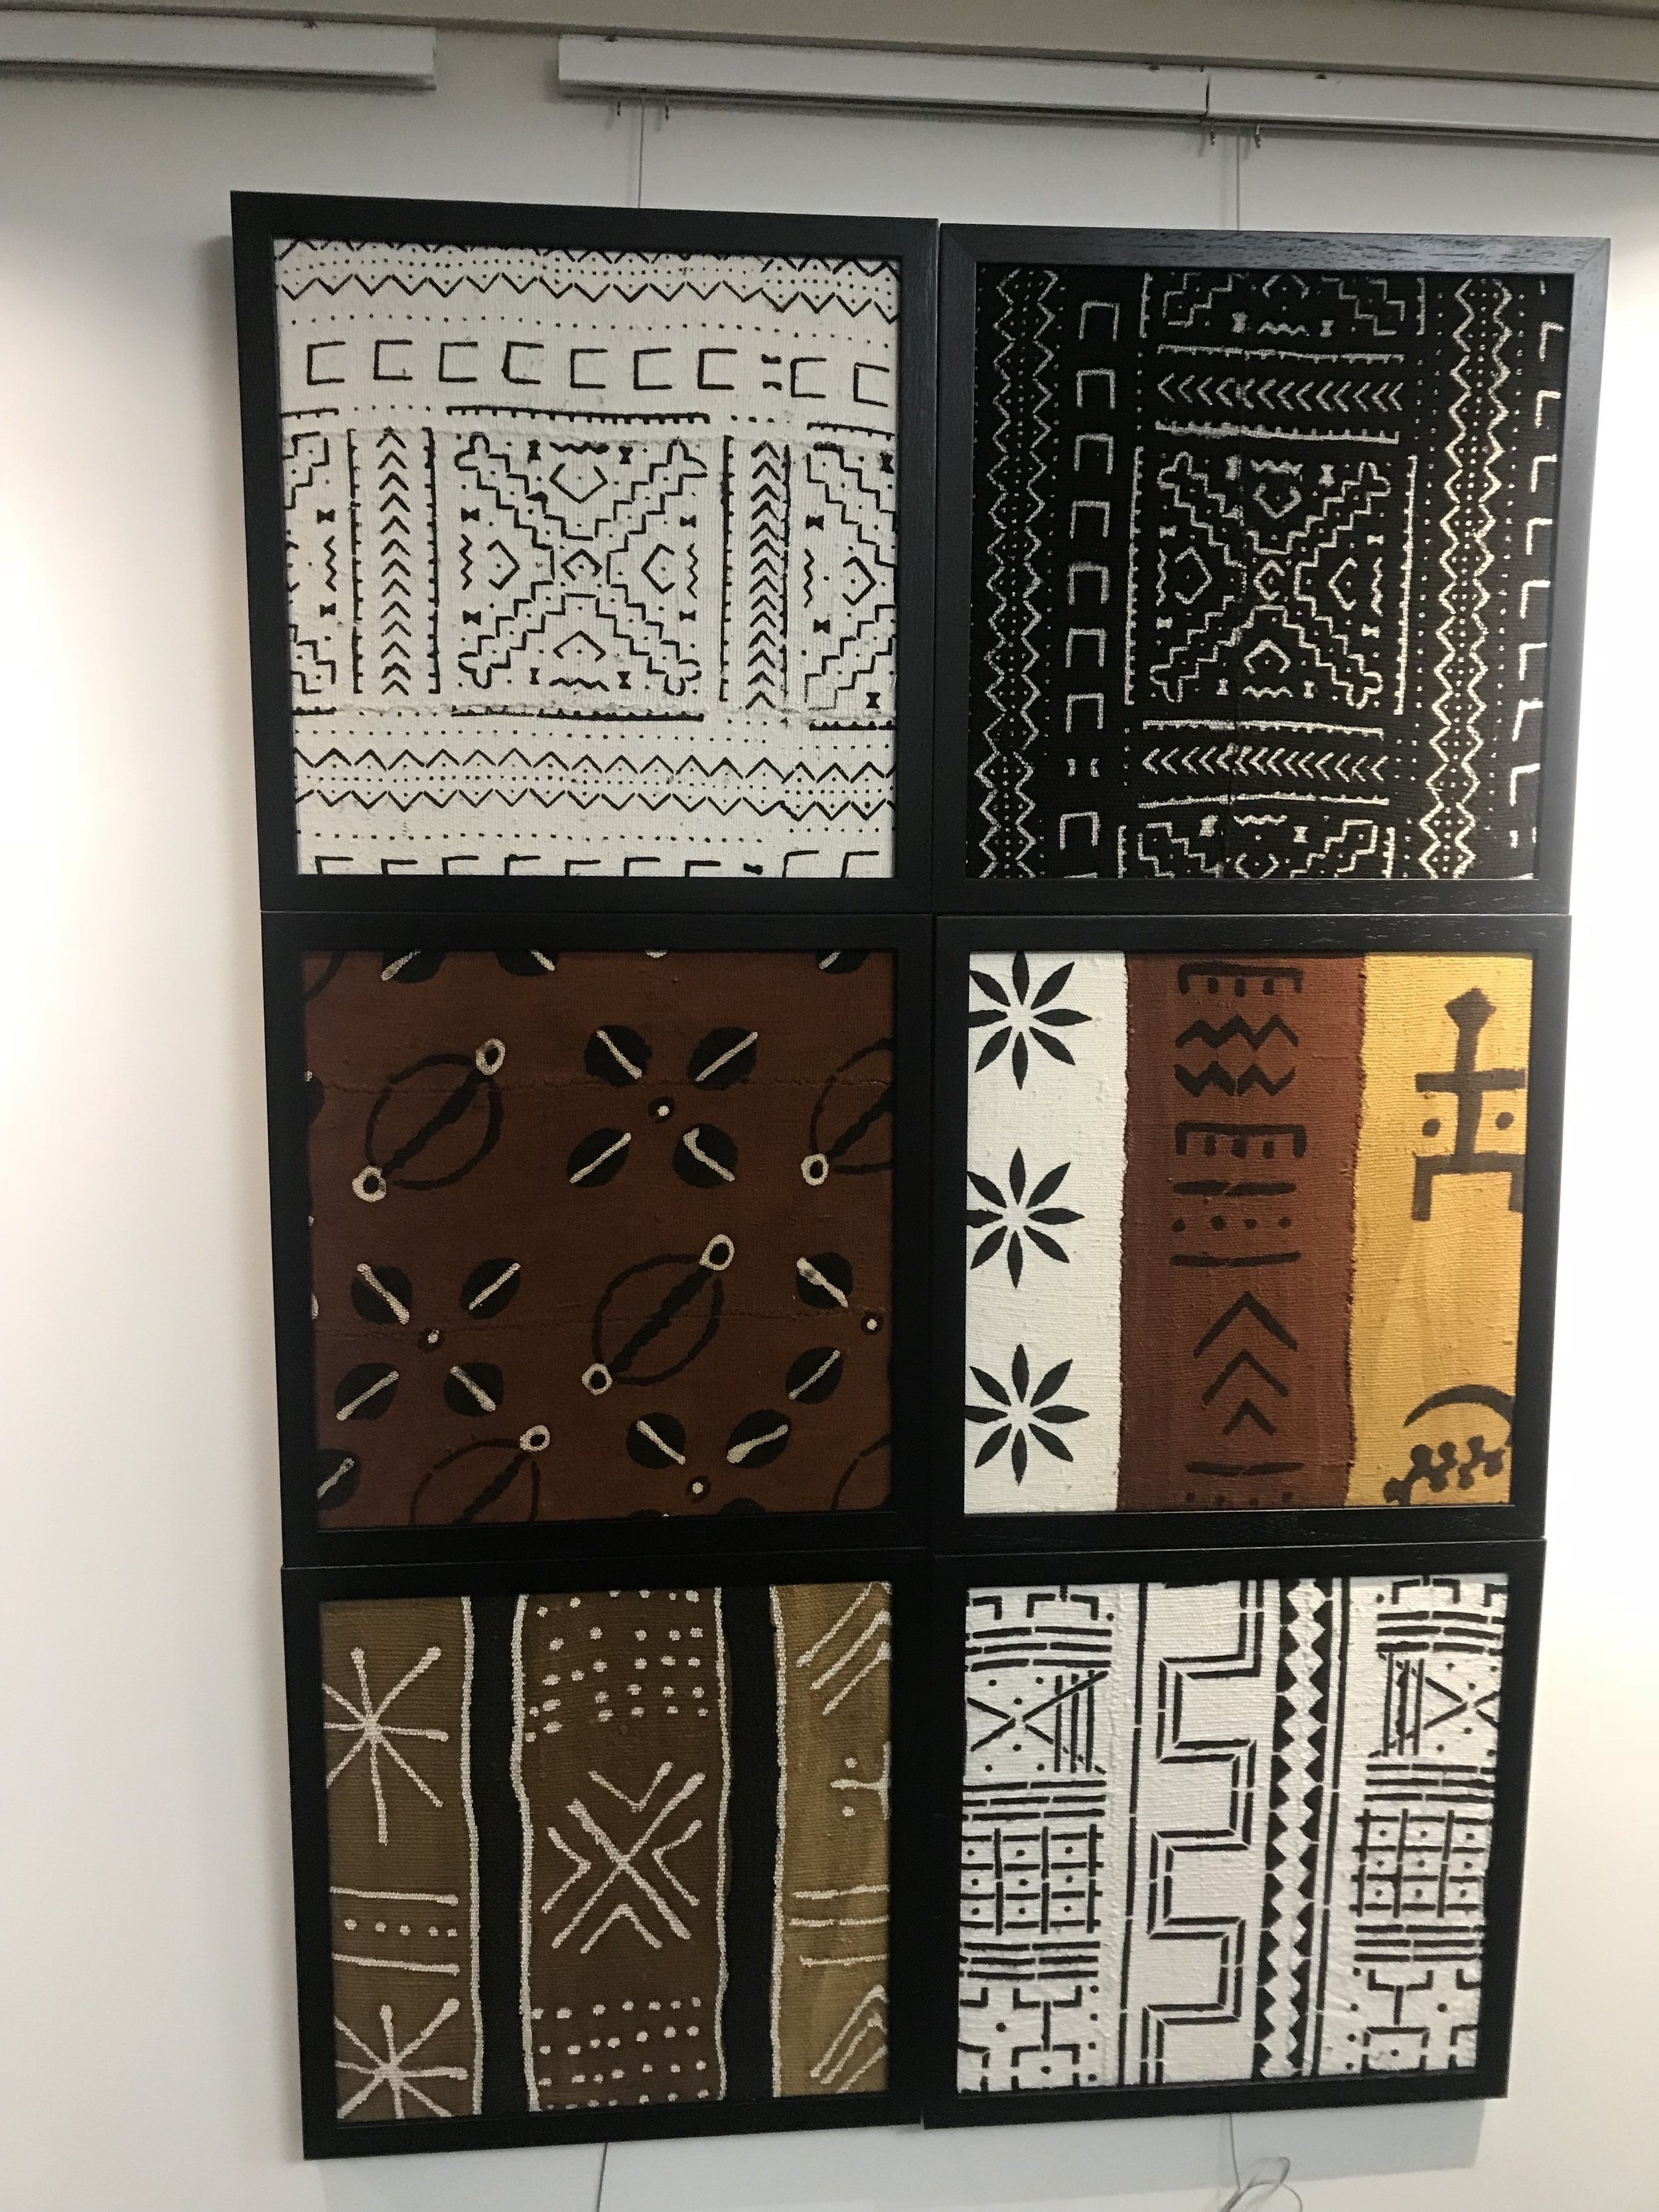 Each of the square pieces above are on sale for $75!  Product Names: White Cross Patch, Black Cross Patch, Rust Cowry Shells Patch, Brown and Mustard Patch, White Rust Gold Patch,White Zigzag Patch